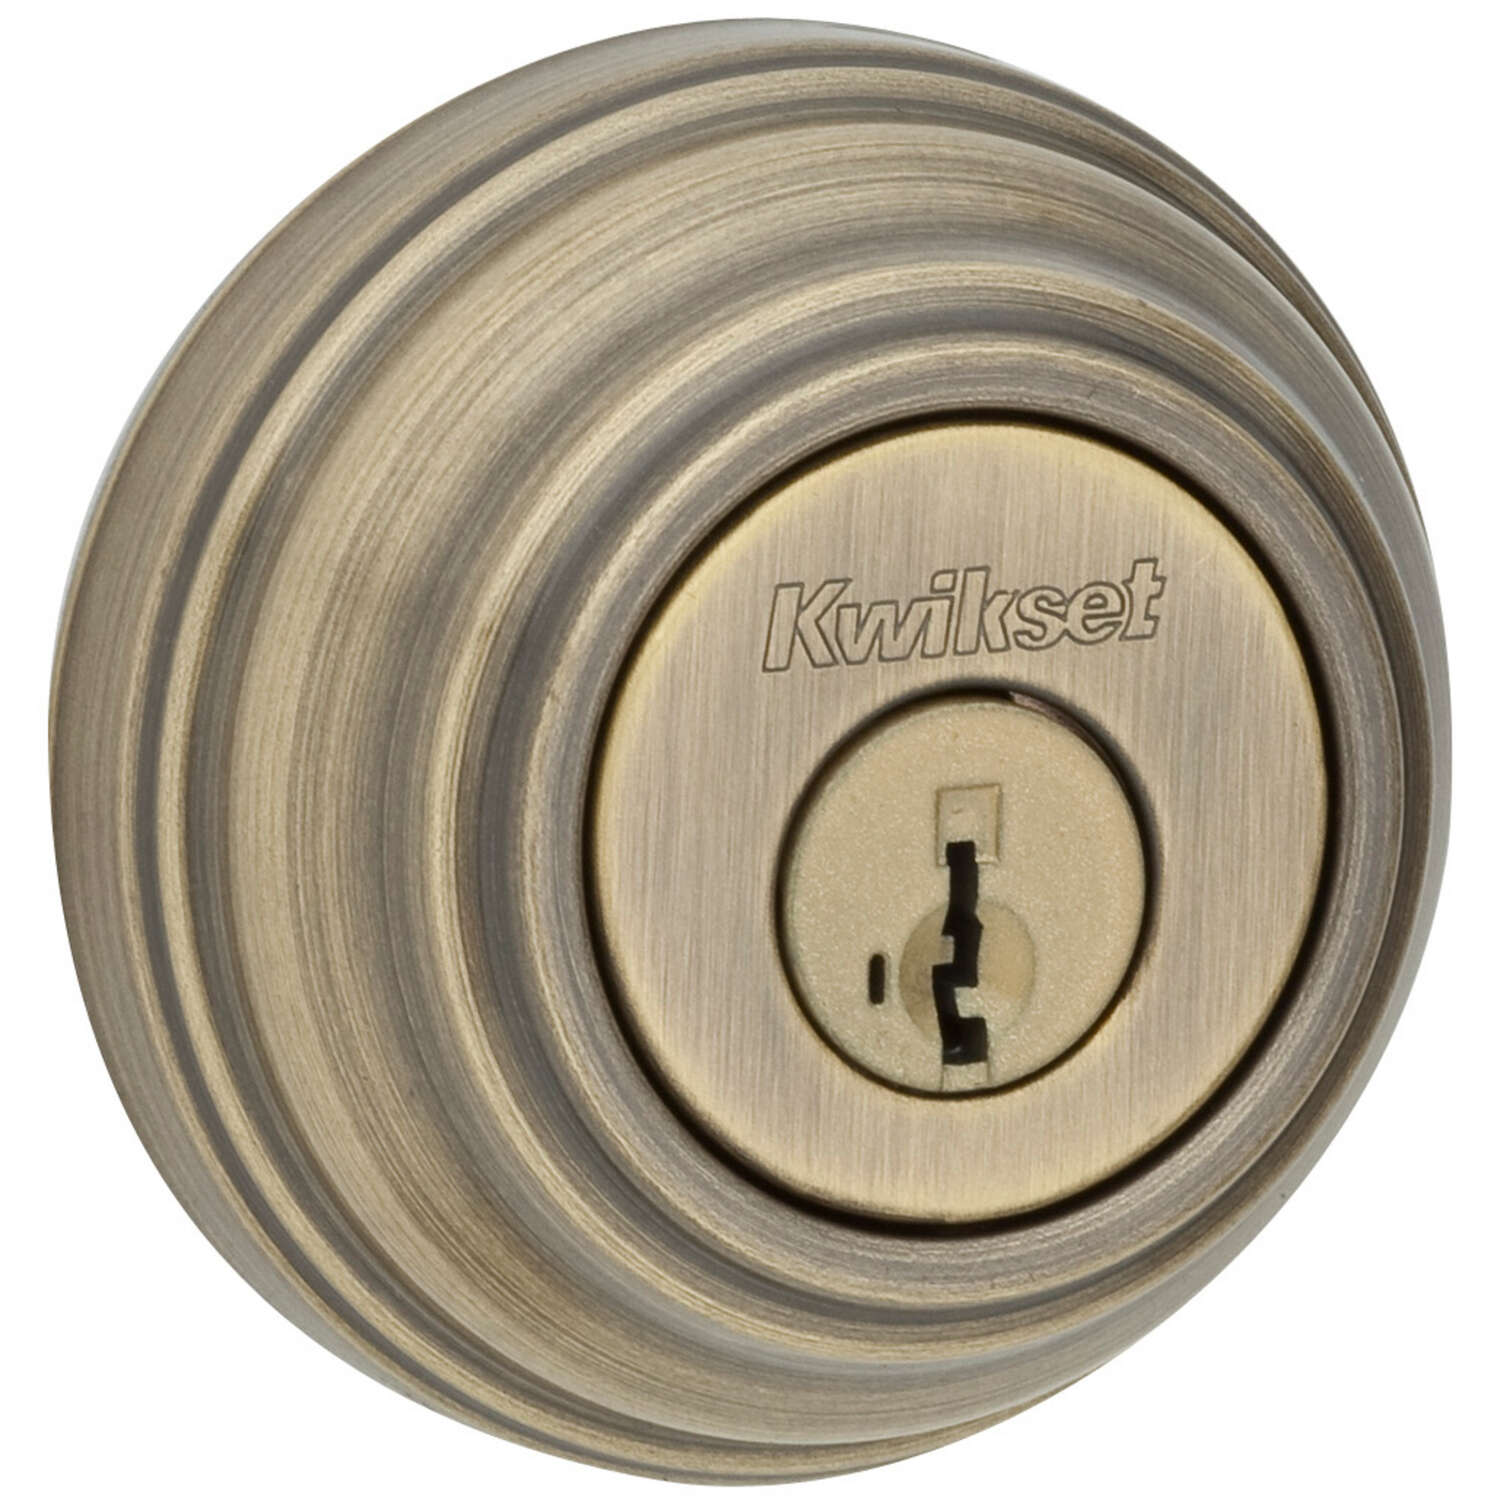 Kwikset SmartKey Antique Brass Metal Deadbolt